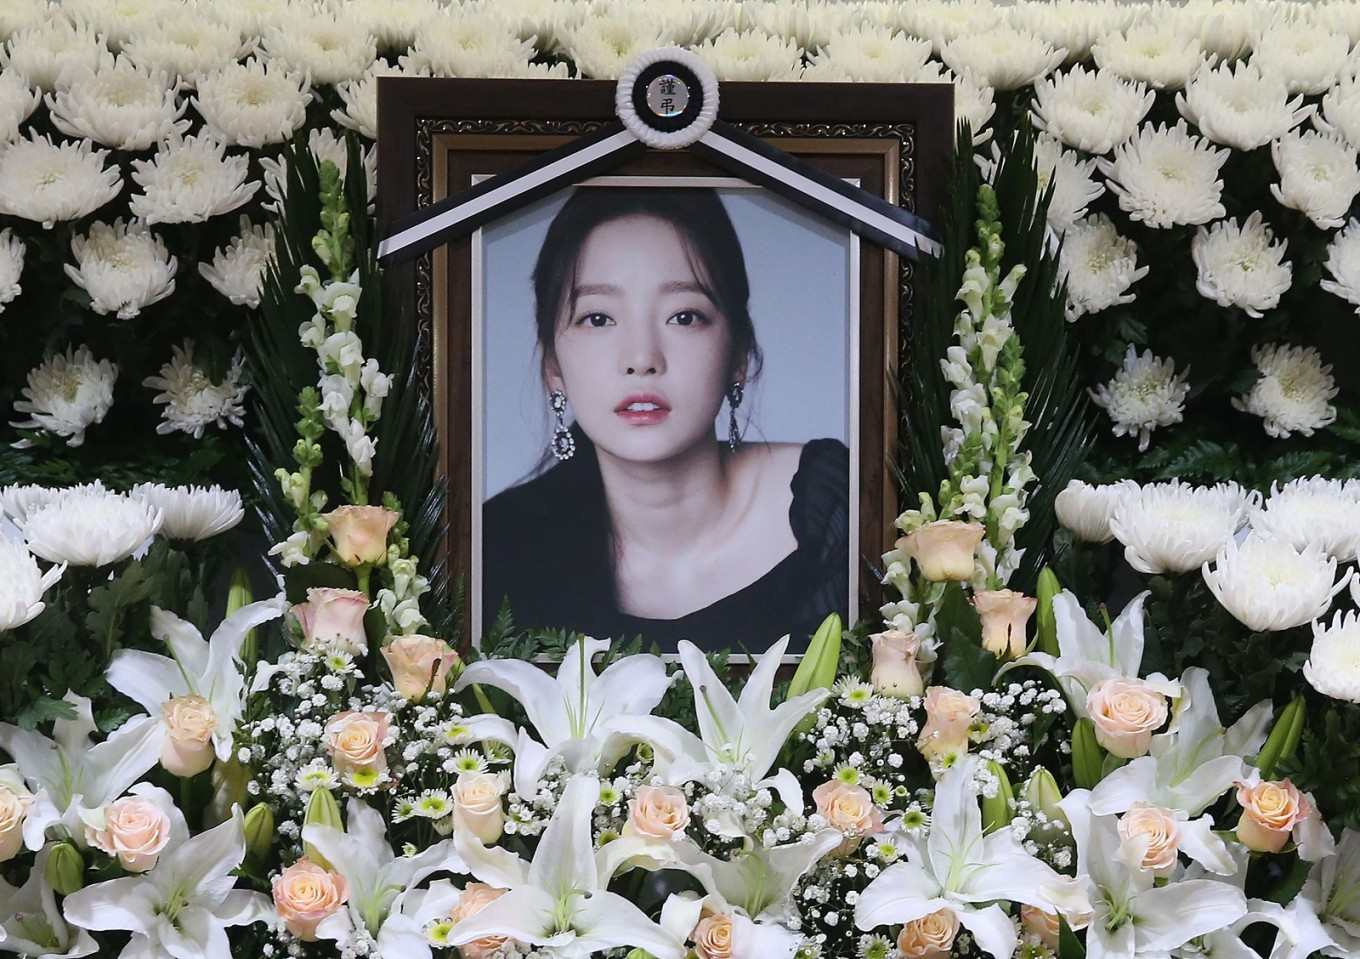 Mother of late K-pop star Goo Hara defends her actions